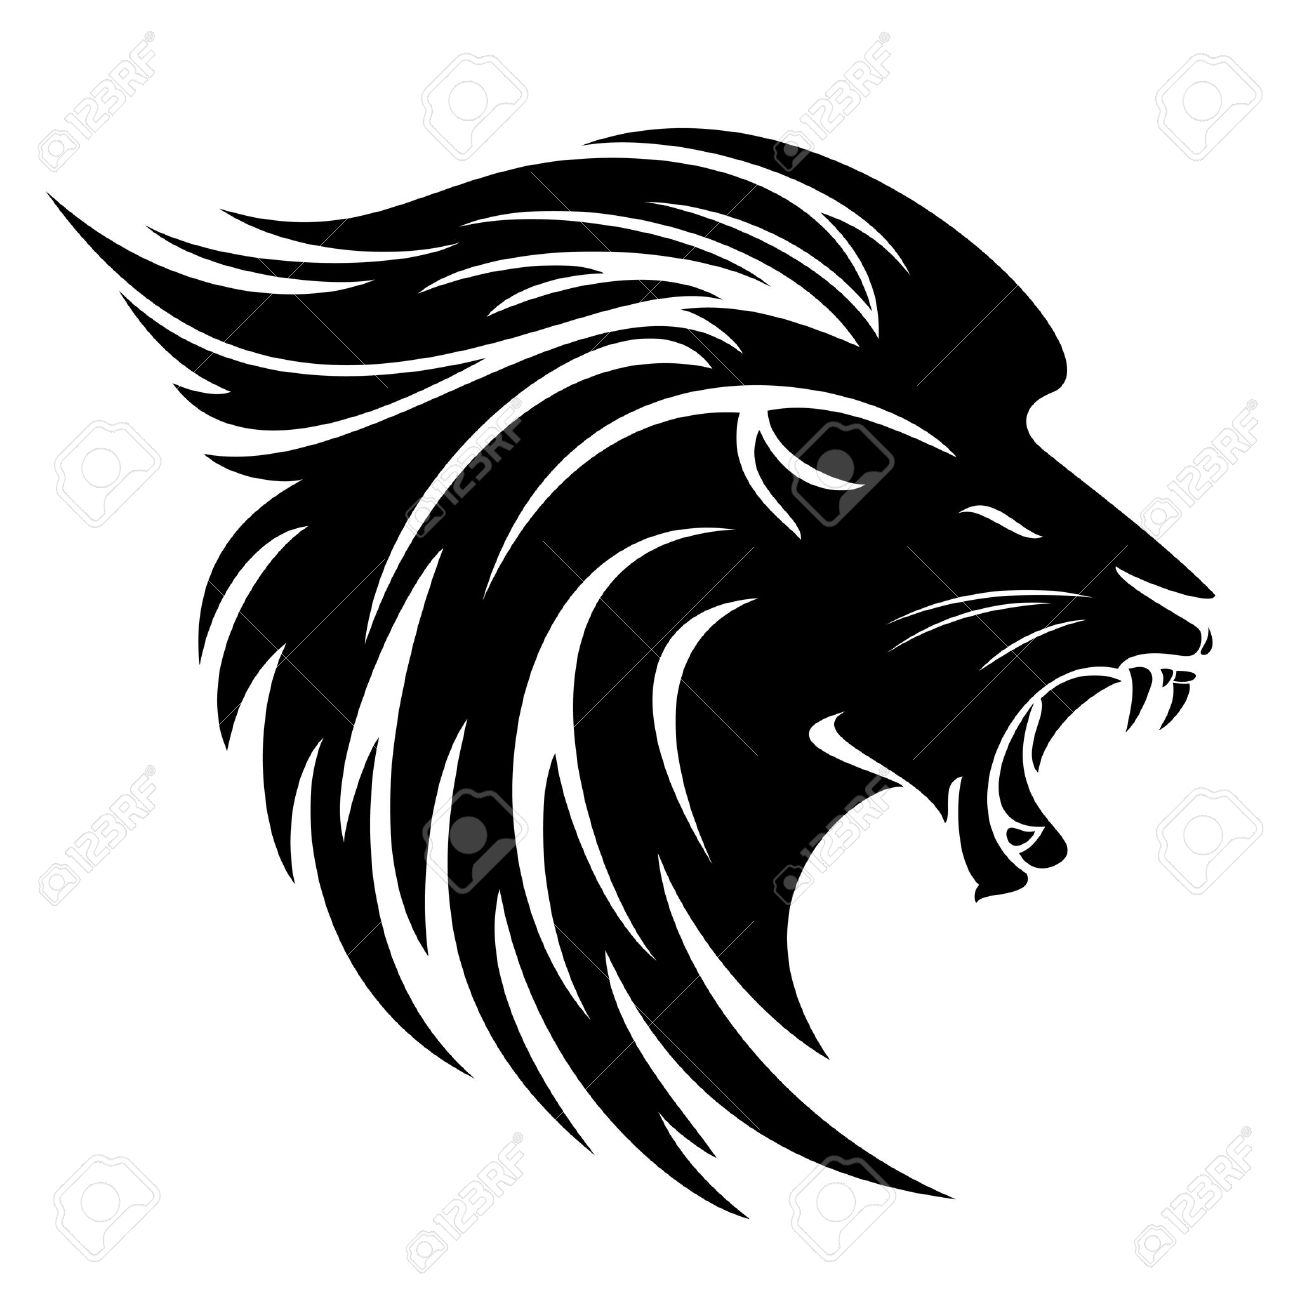 lion head side view tribal design black and white vector animal rh 123rf com vector lion fish vector lion head